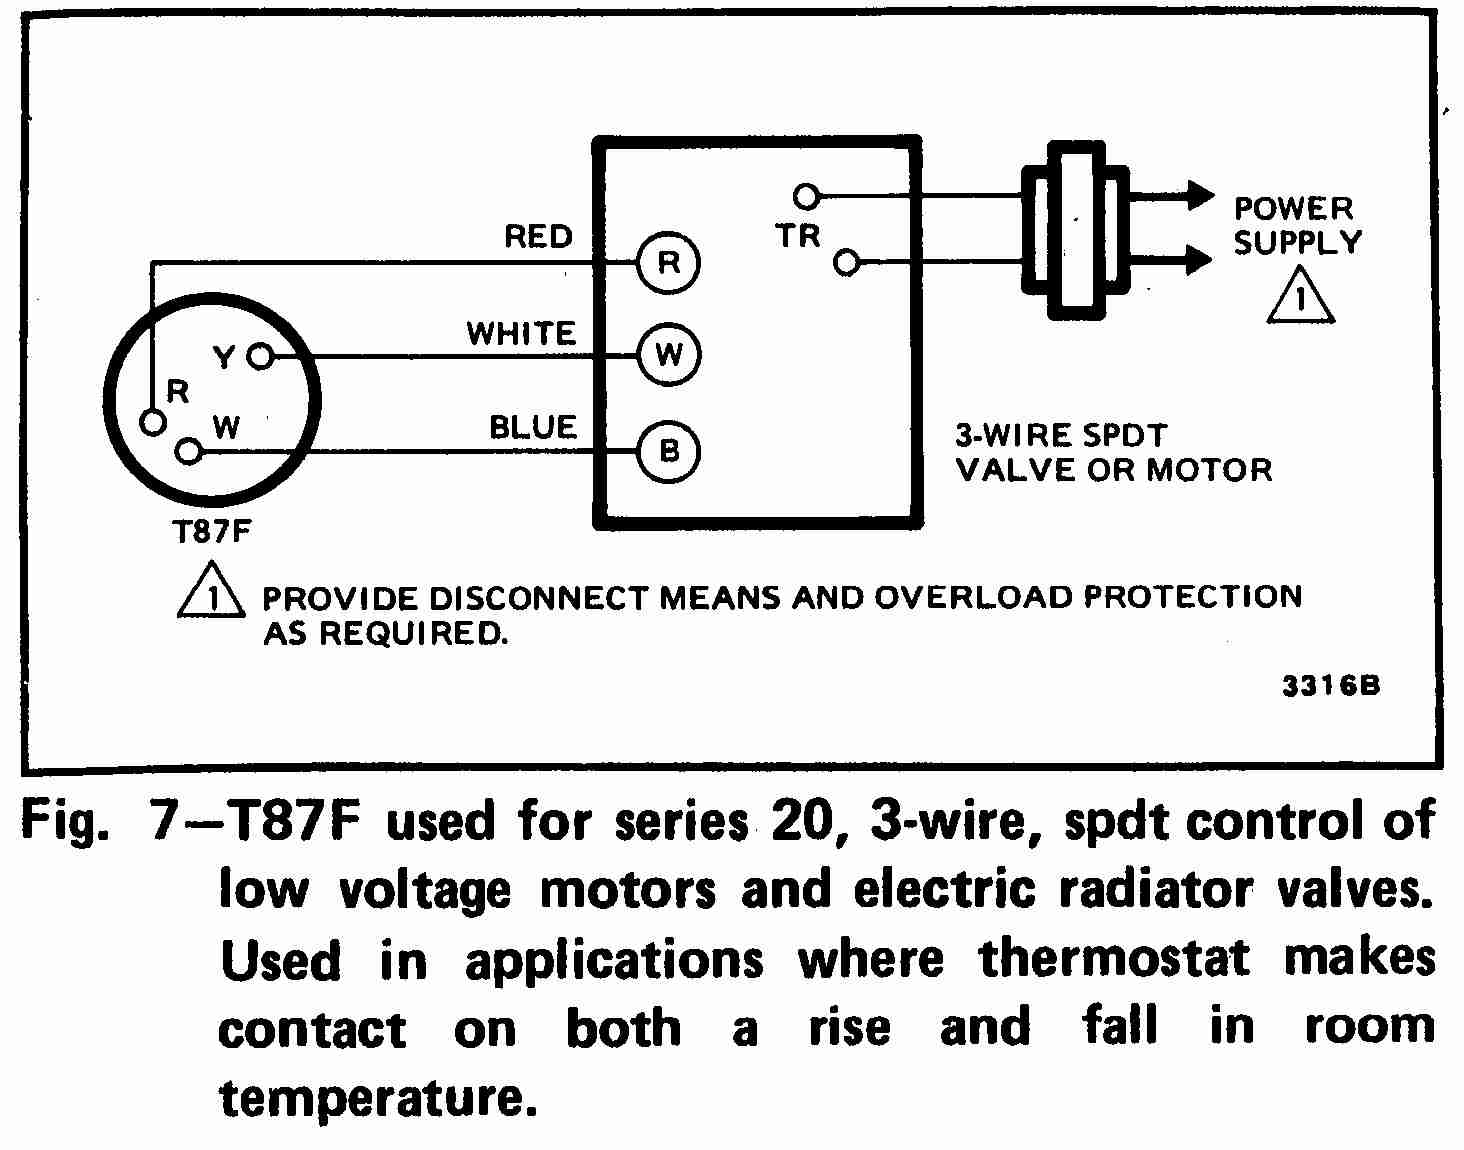 TT_T87F_0002_3W2_DJF room thermostat wiring diagrams for hvac systems hvac wiring diagram at crackthecode.co